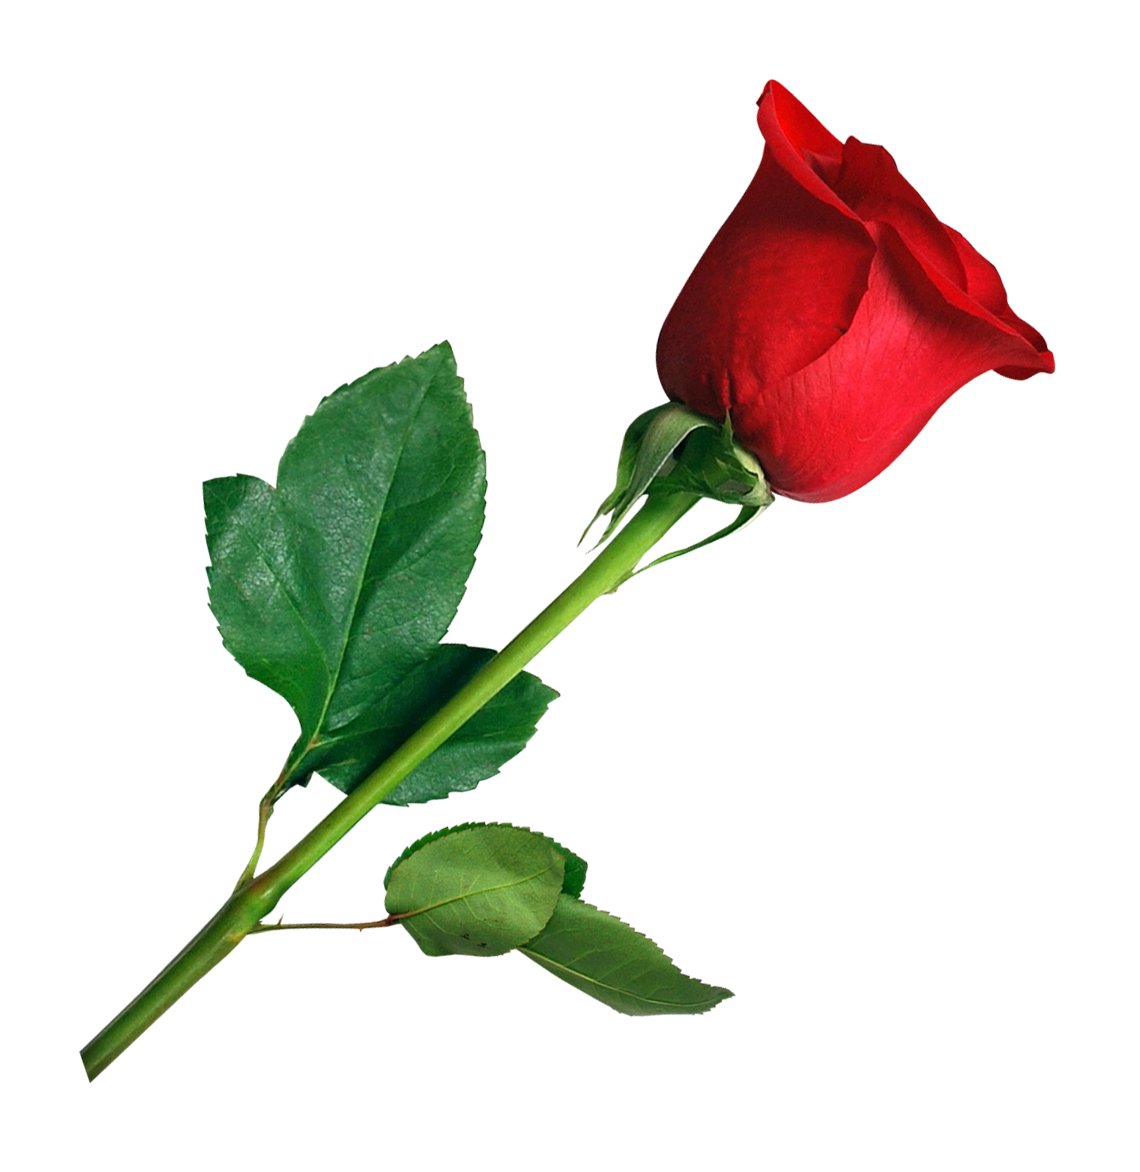 Rose PNG Images - PngPix for Transparent Png Images Roses  66pct